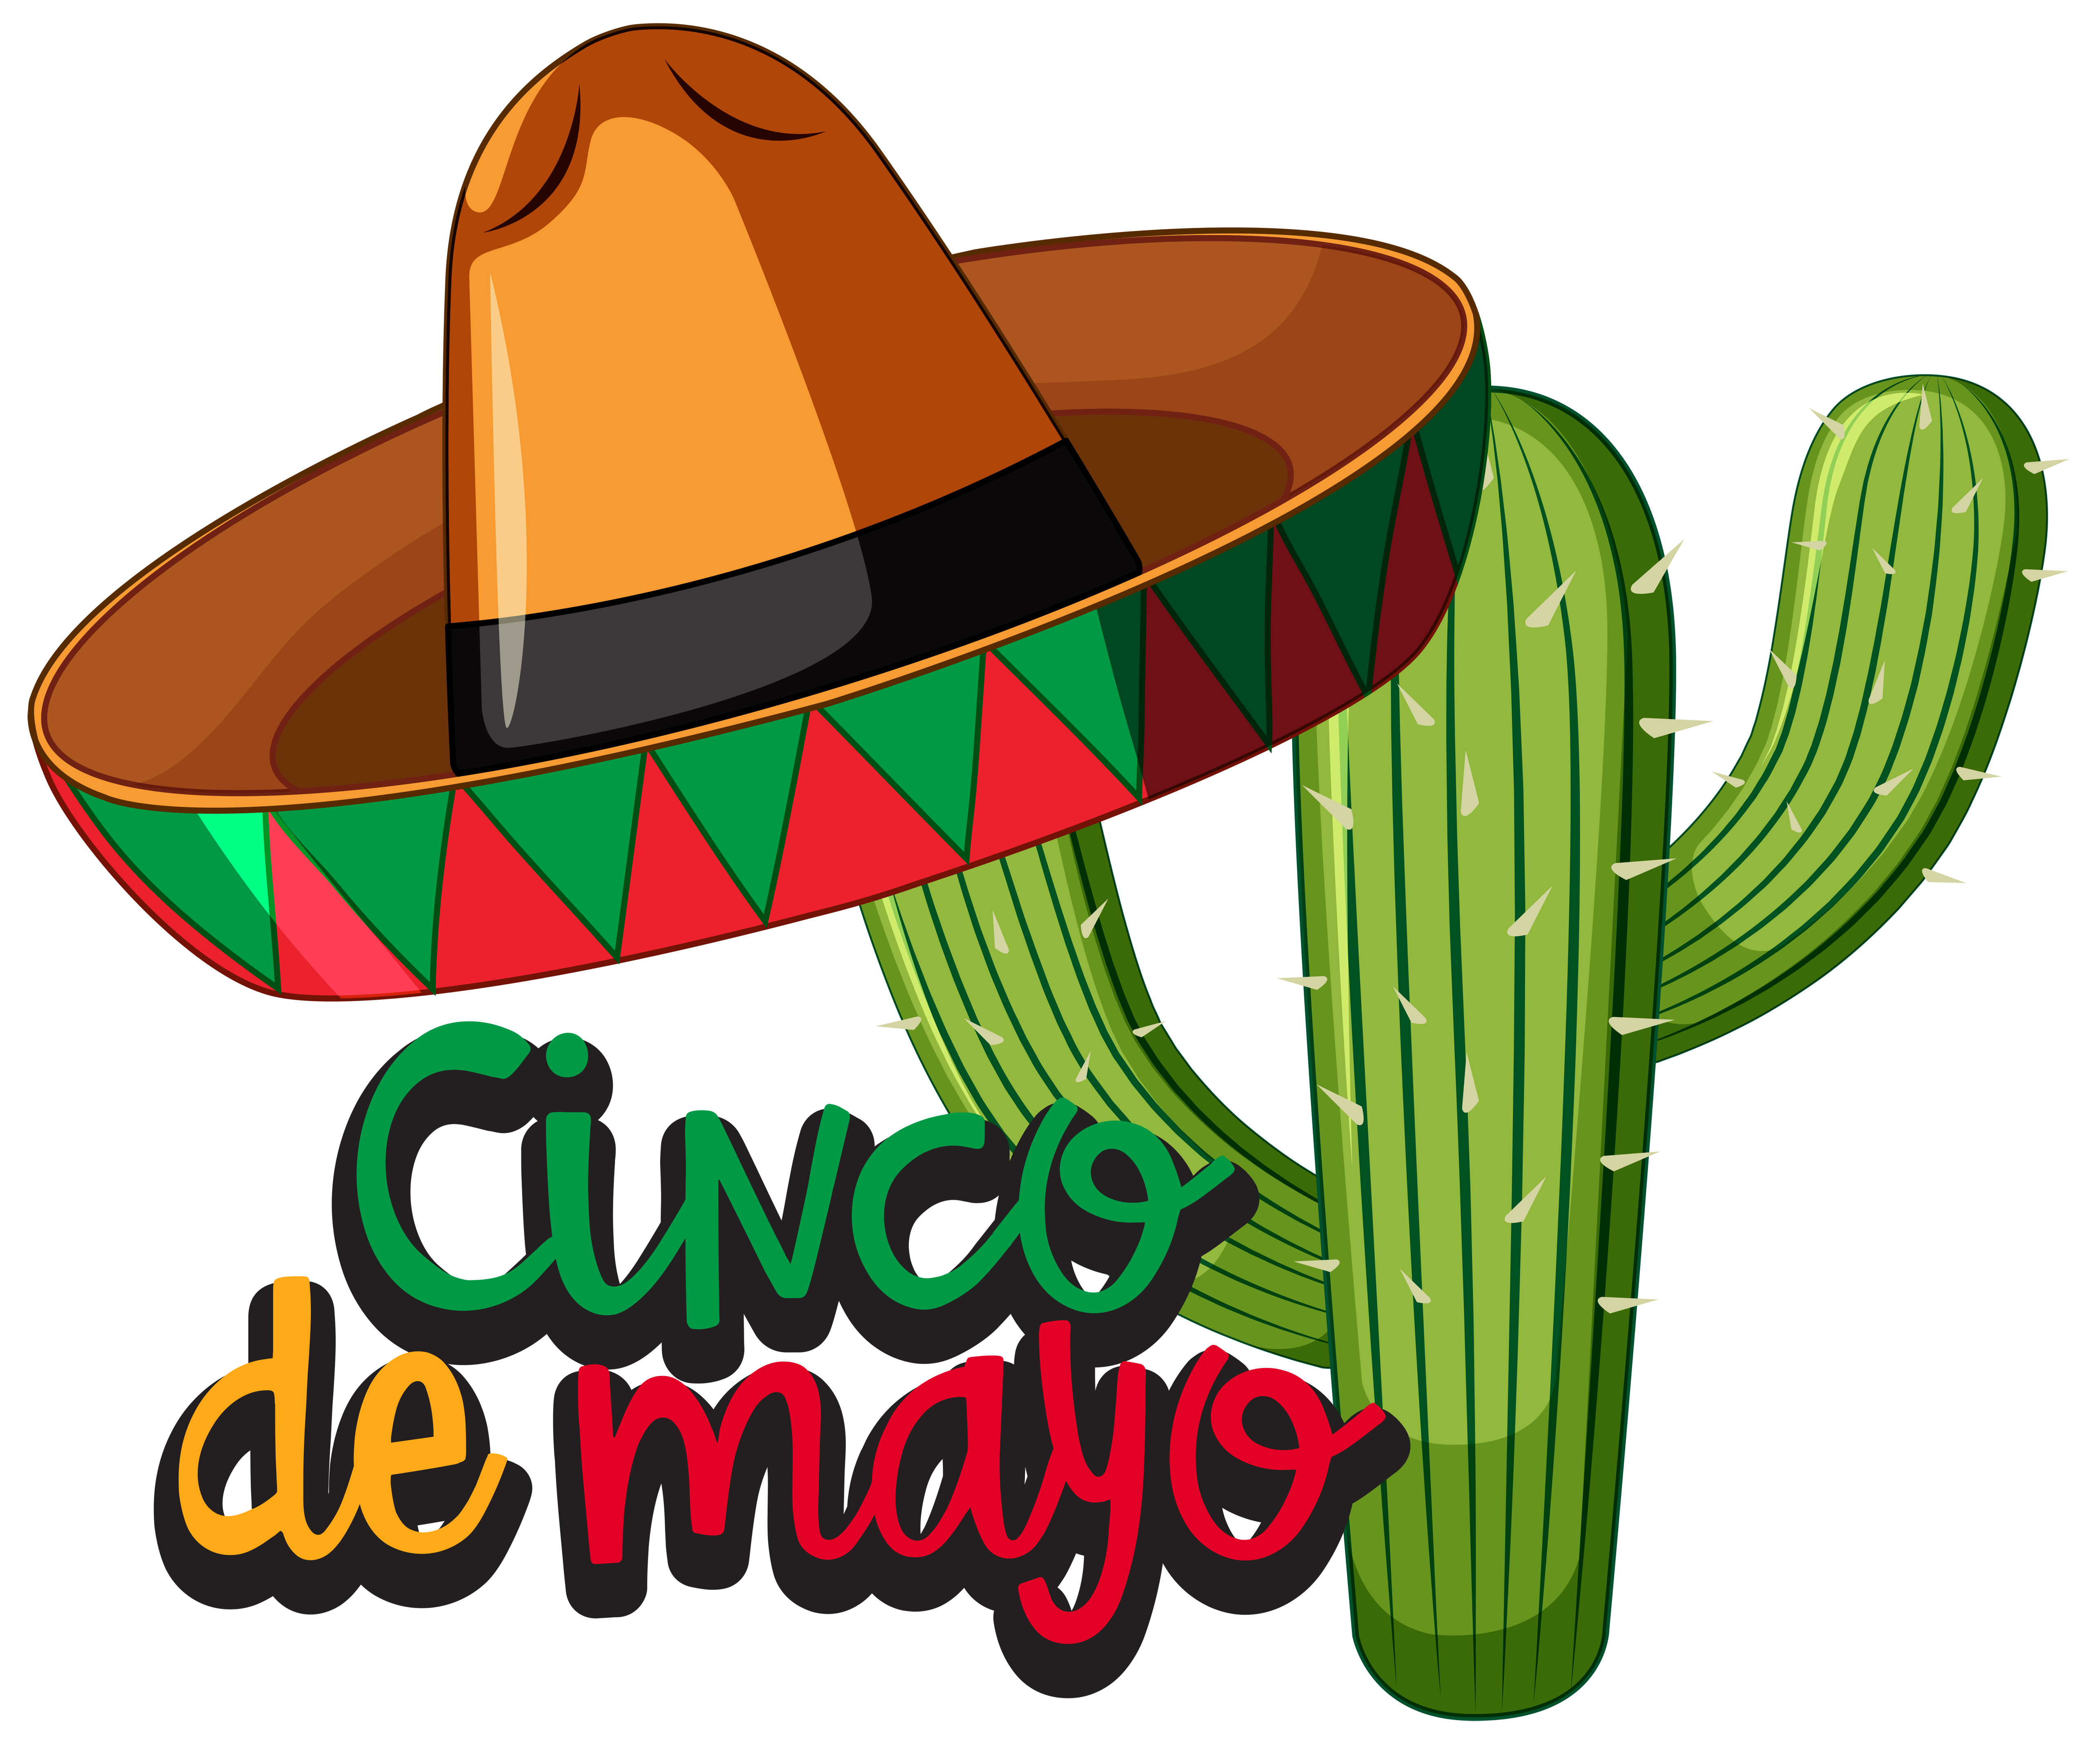 Cinco de mayo festival with cactus and hat 454992 Vector ...